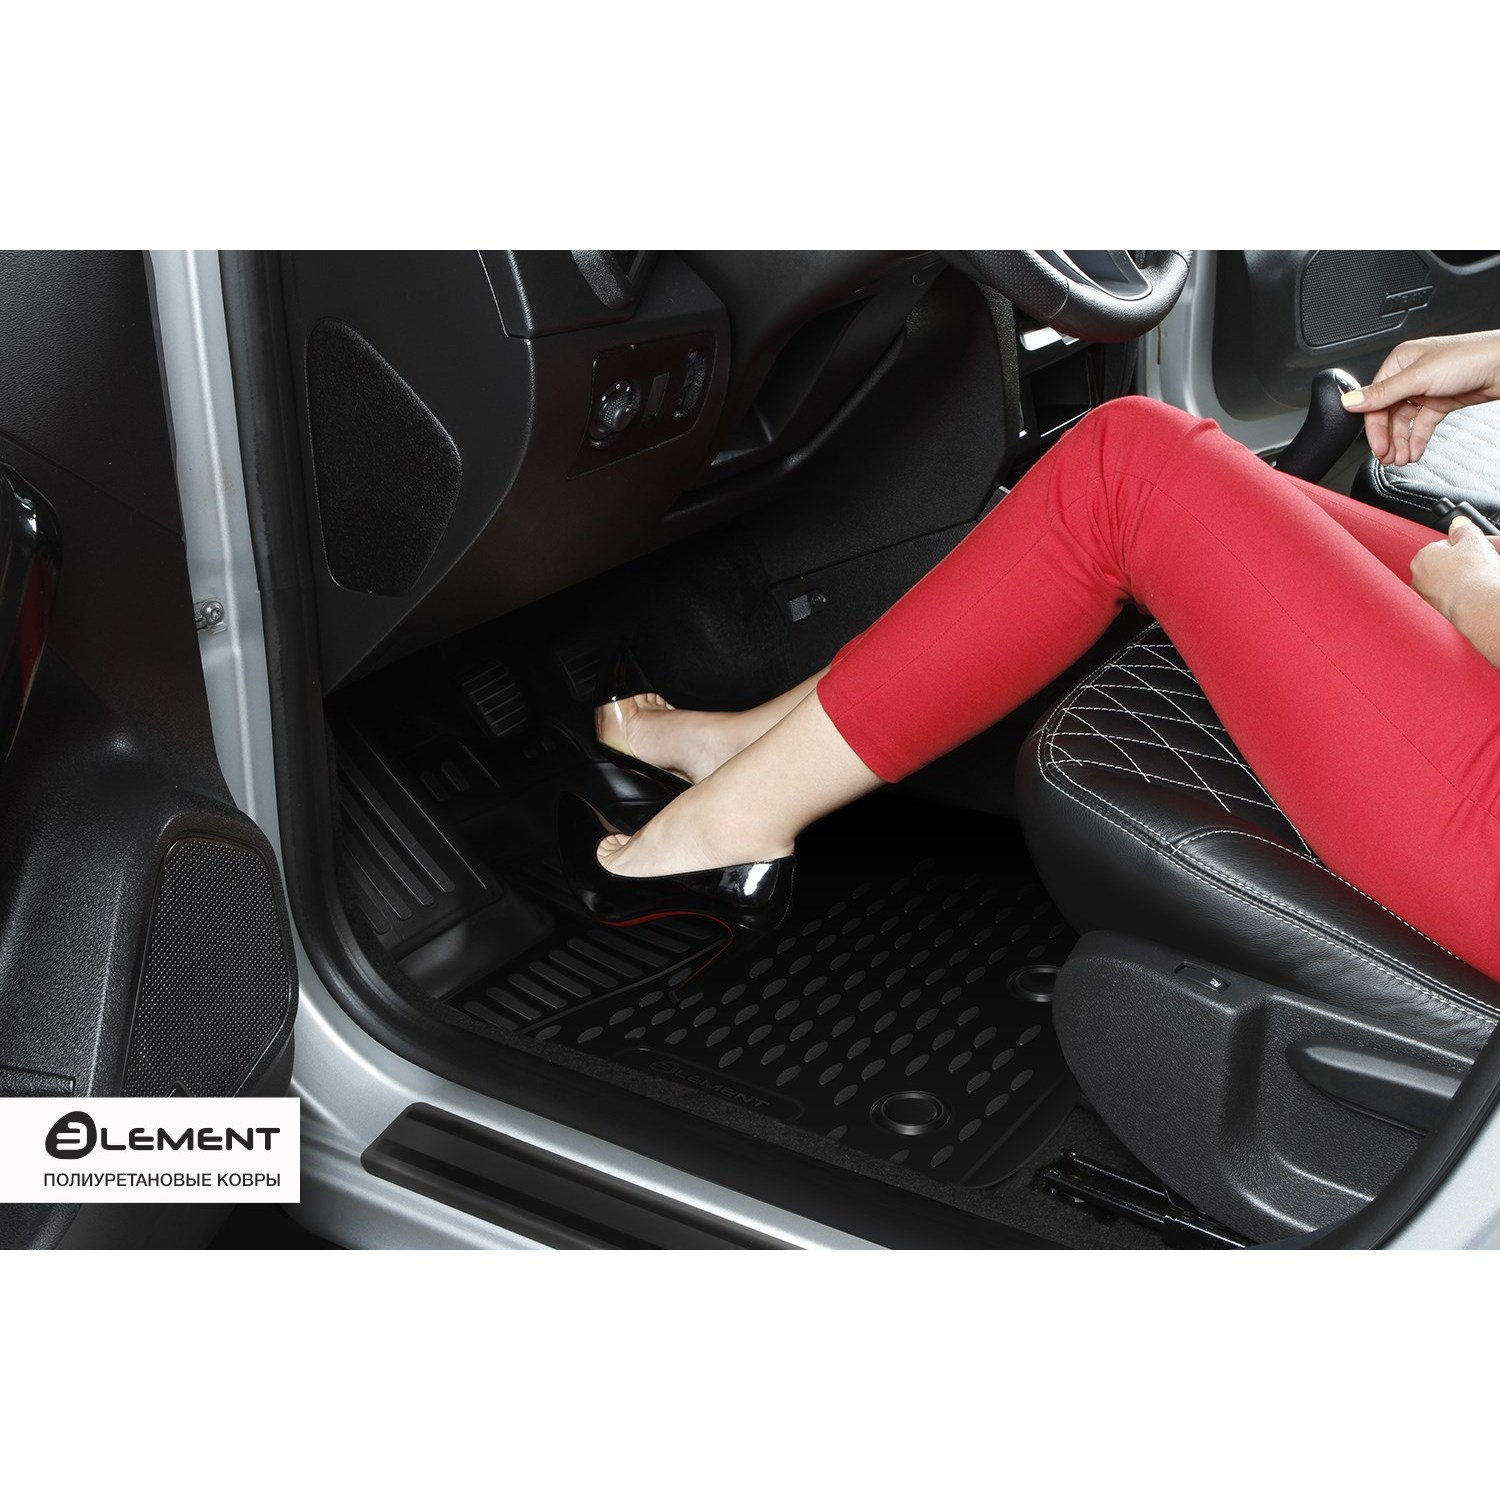 3D Mats In The Salon For VW Golf VII 2013-4 Pcs Free Shipping (gray) NLC.3D. 51.44.211k